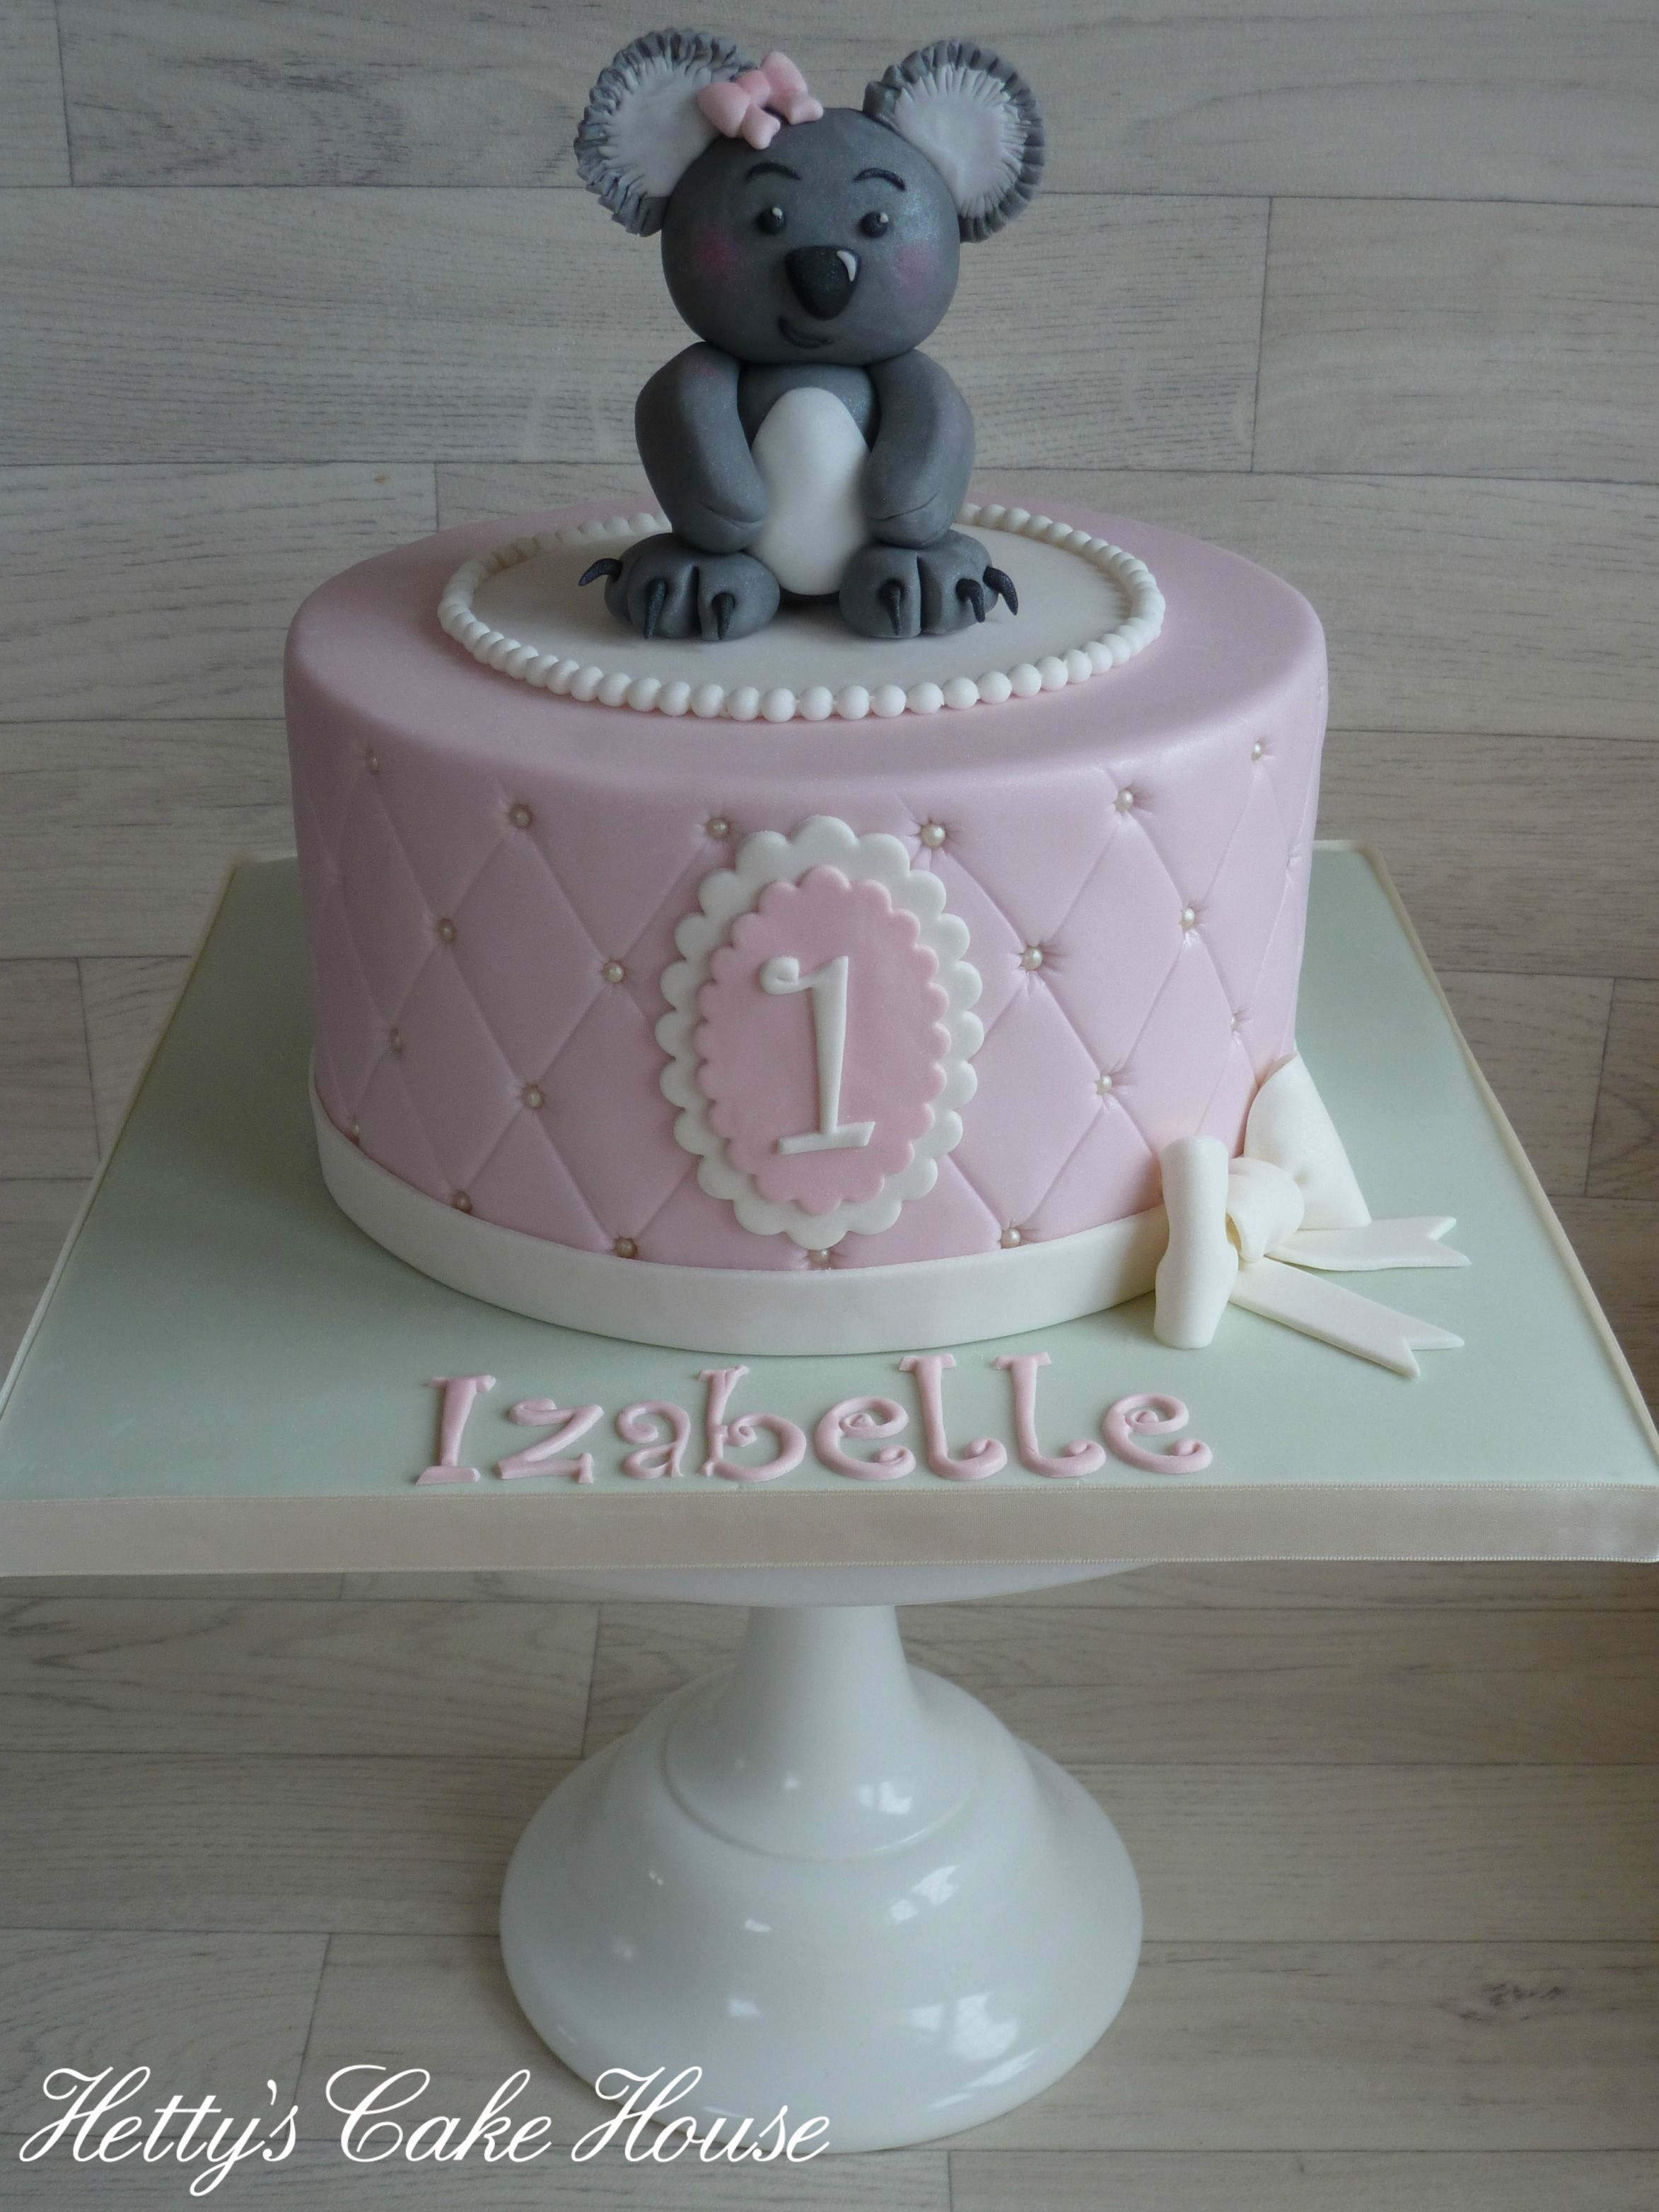 Koala Bear Themed Baby Shower : koala, themed, shower, Celebration, Cakes, Hettys, House, Cakes,, Princess, Birthday, Cake,, Shower